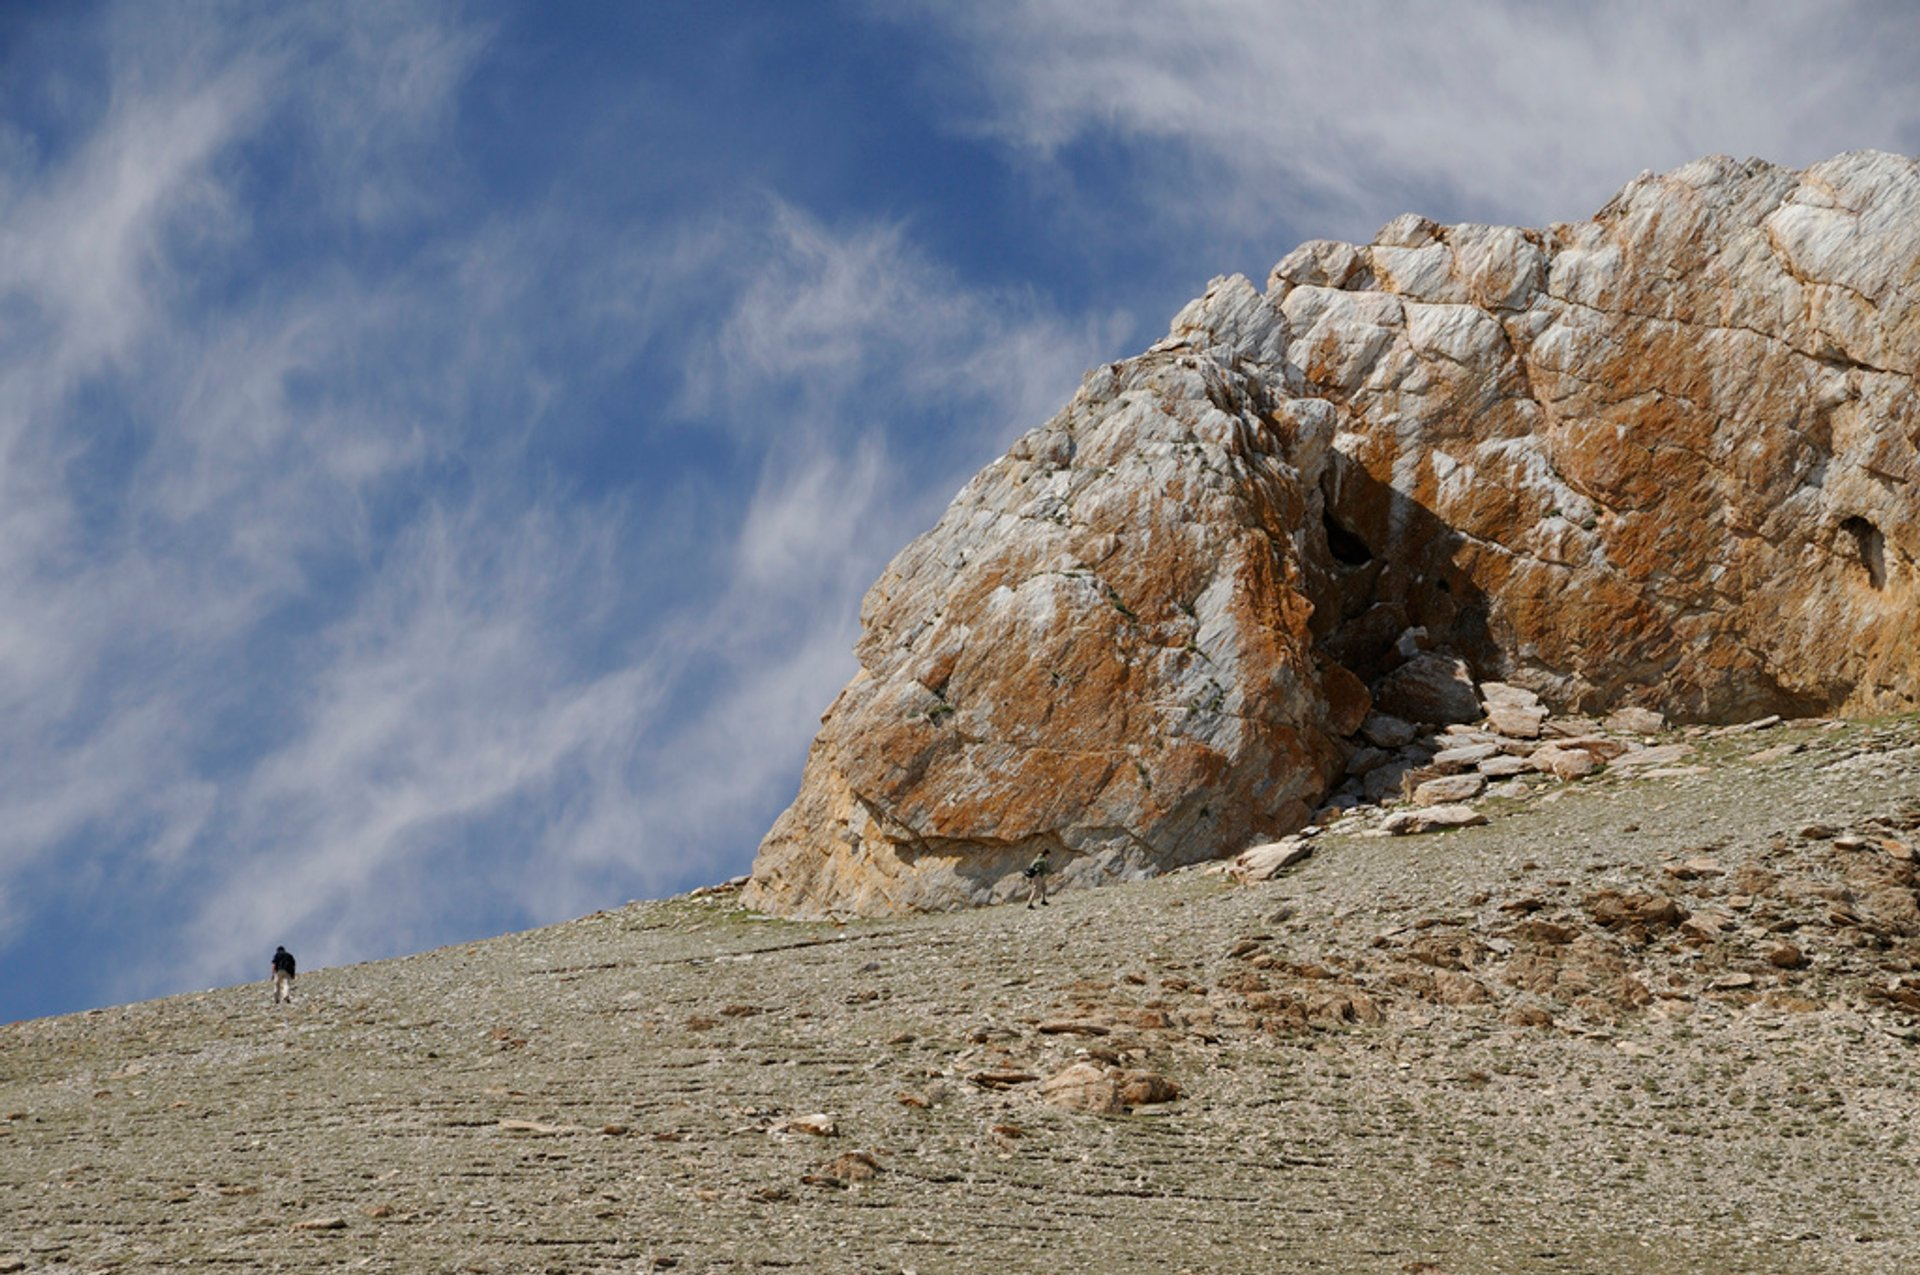 One of the limestone outcrops, but without caves. Govi-Altai, Mongolia.